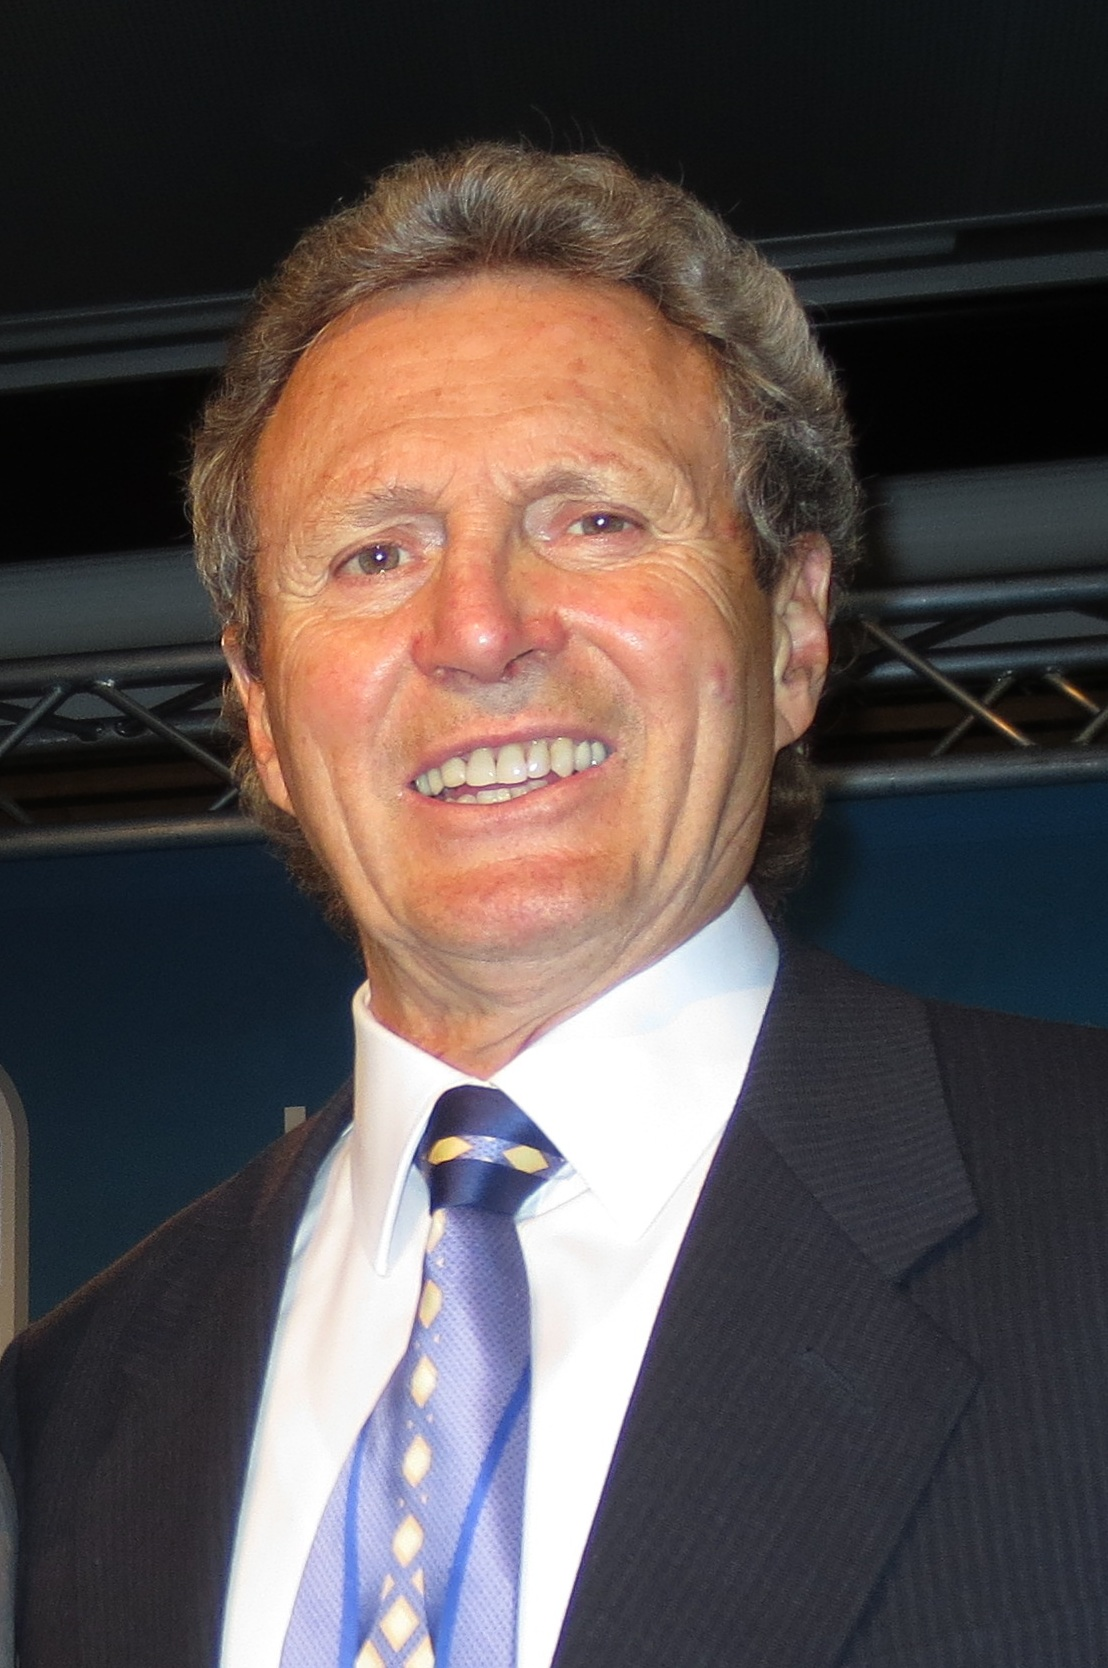 a biography of paul henderson a canadian former professional ice hockey player Bobby orr net worth is $35 million robert gordon bobby orr, oc is a canadian former professional ice hockey player, with a net worth of $35 million.